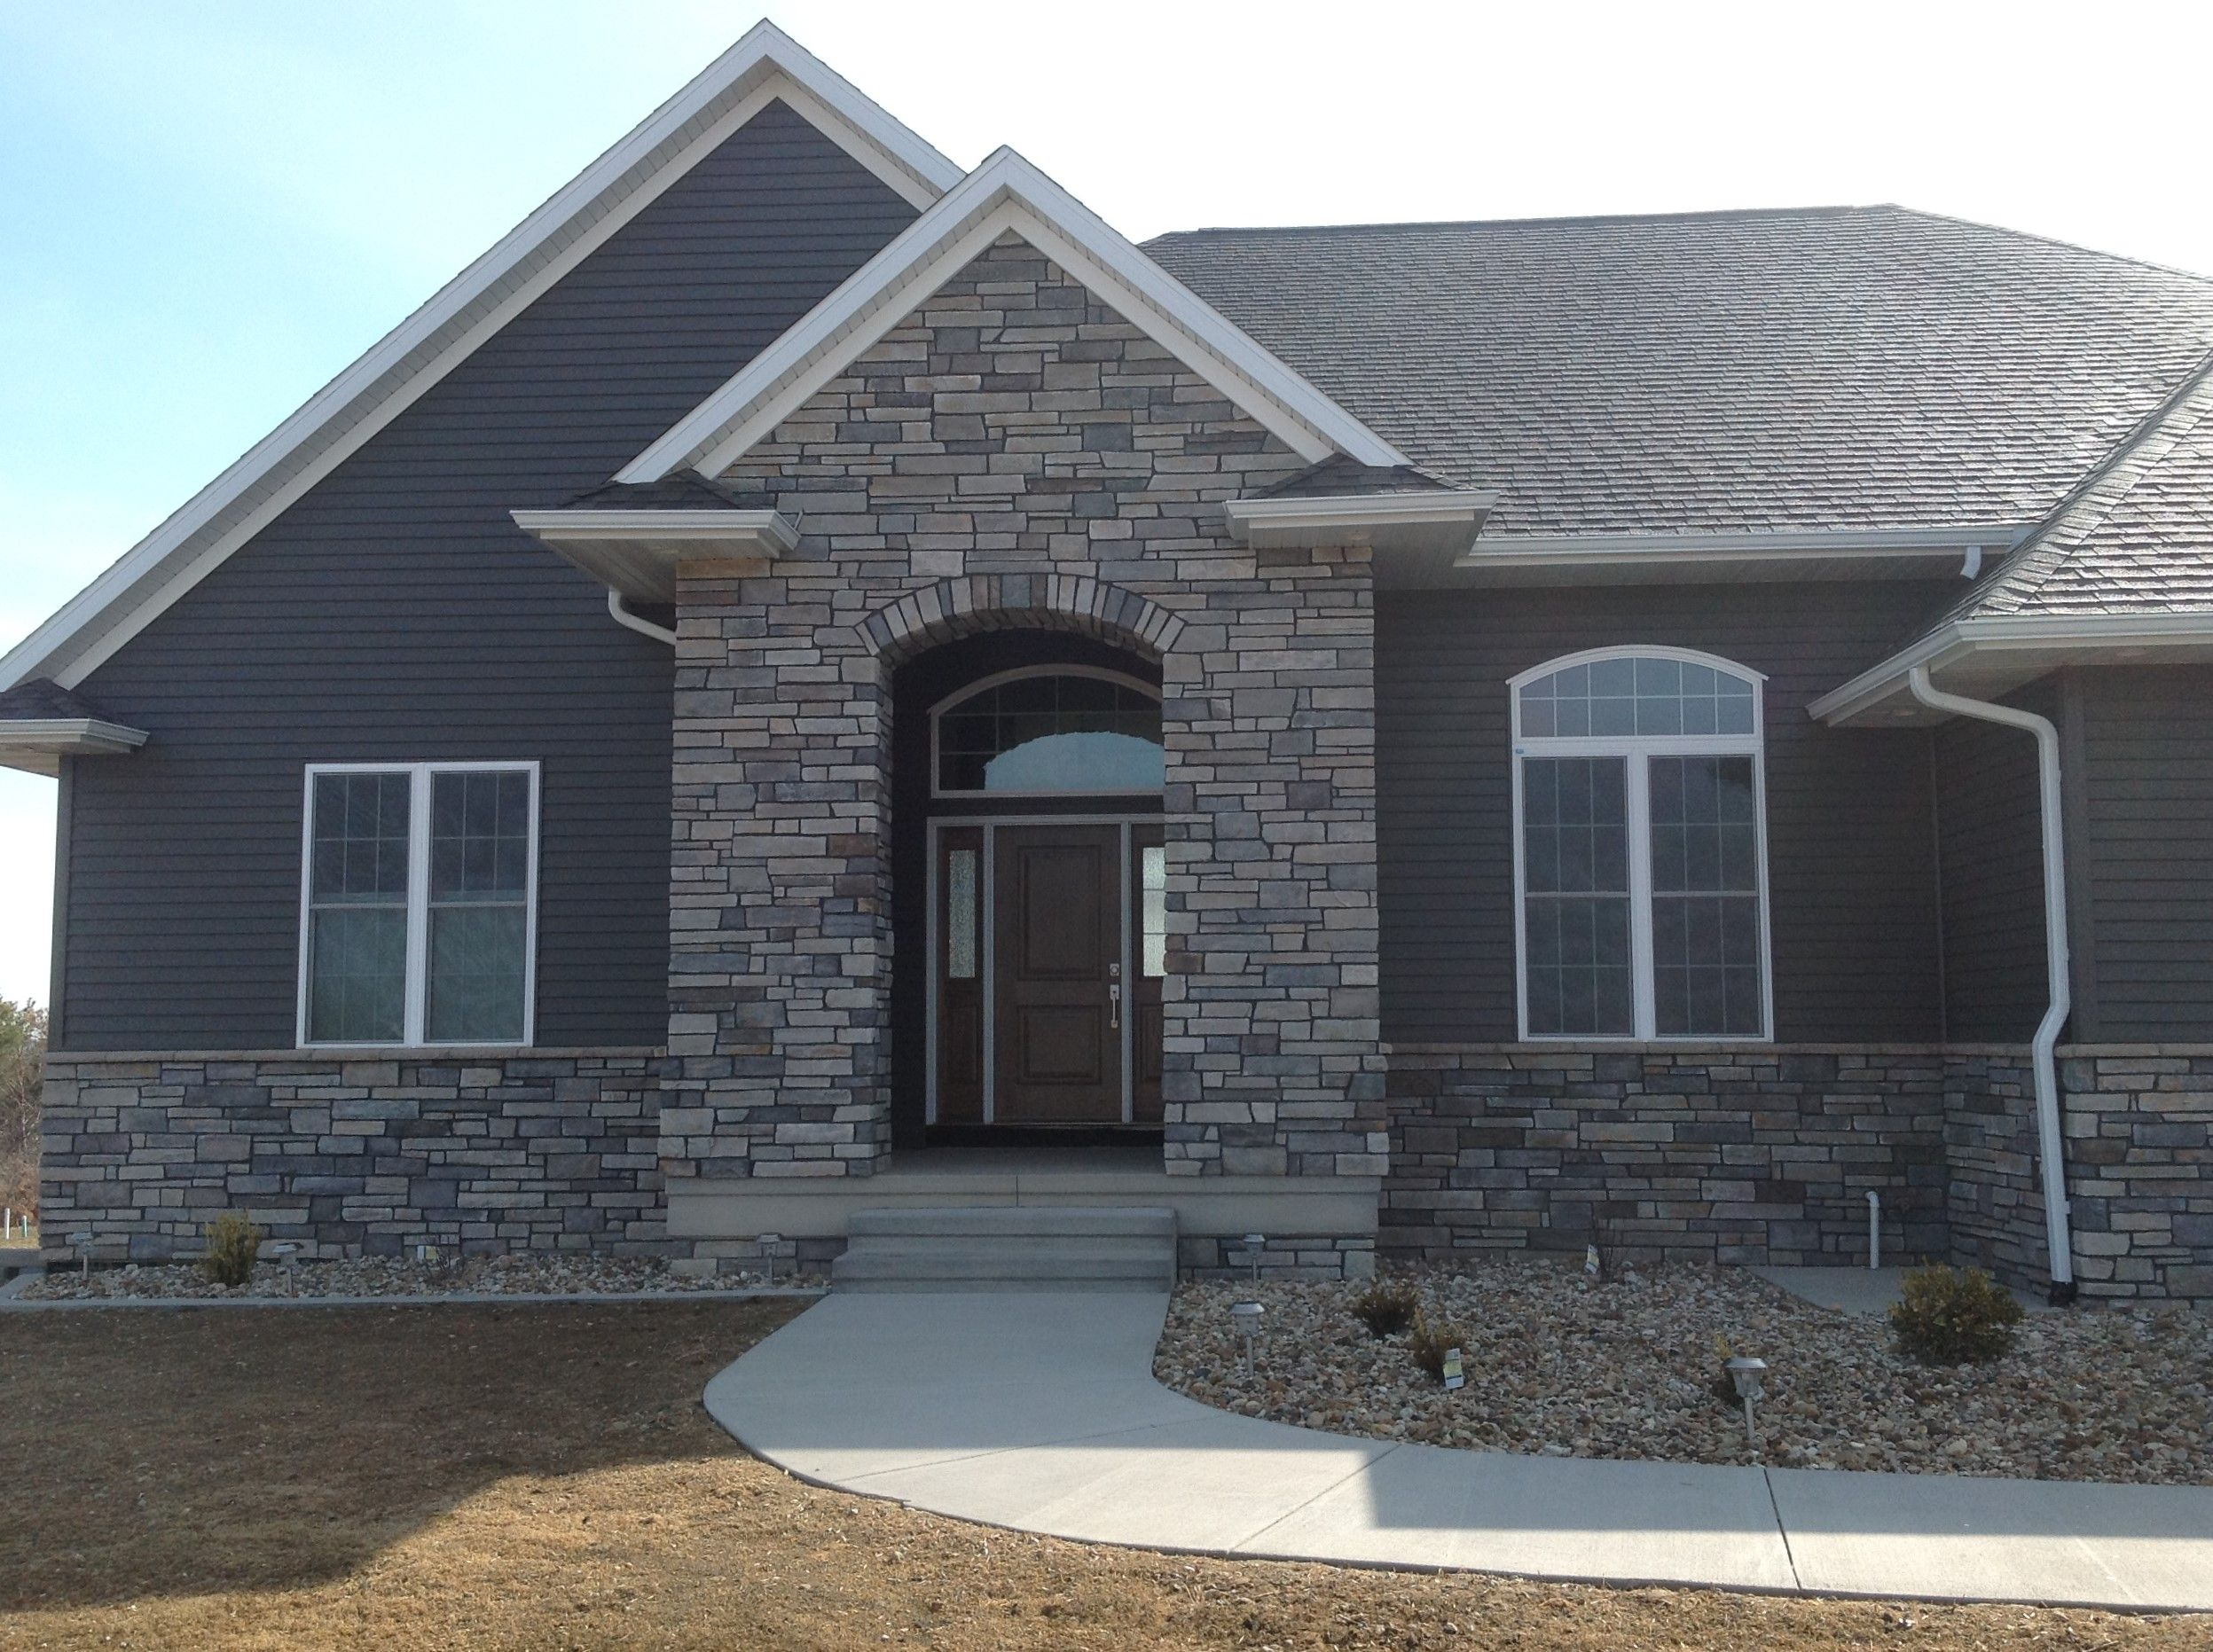 Boral Echo Ridge Country Ledgestone Country Ledgestone